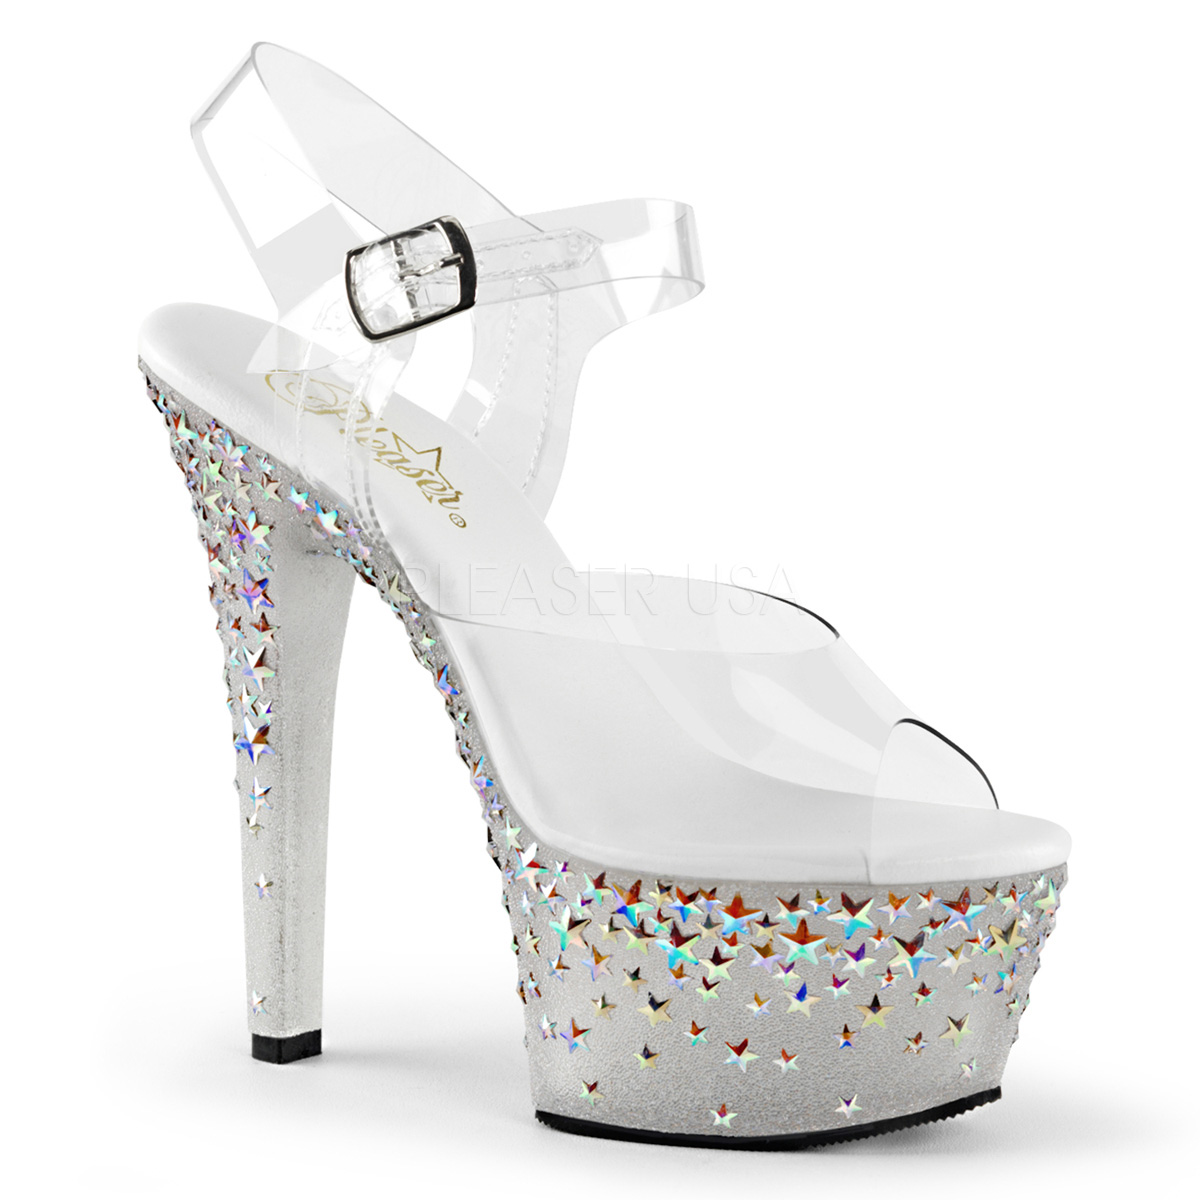 6 Inch Stiletto Heel Hologram Stars Platform Sandals - Click Image to Close